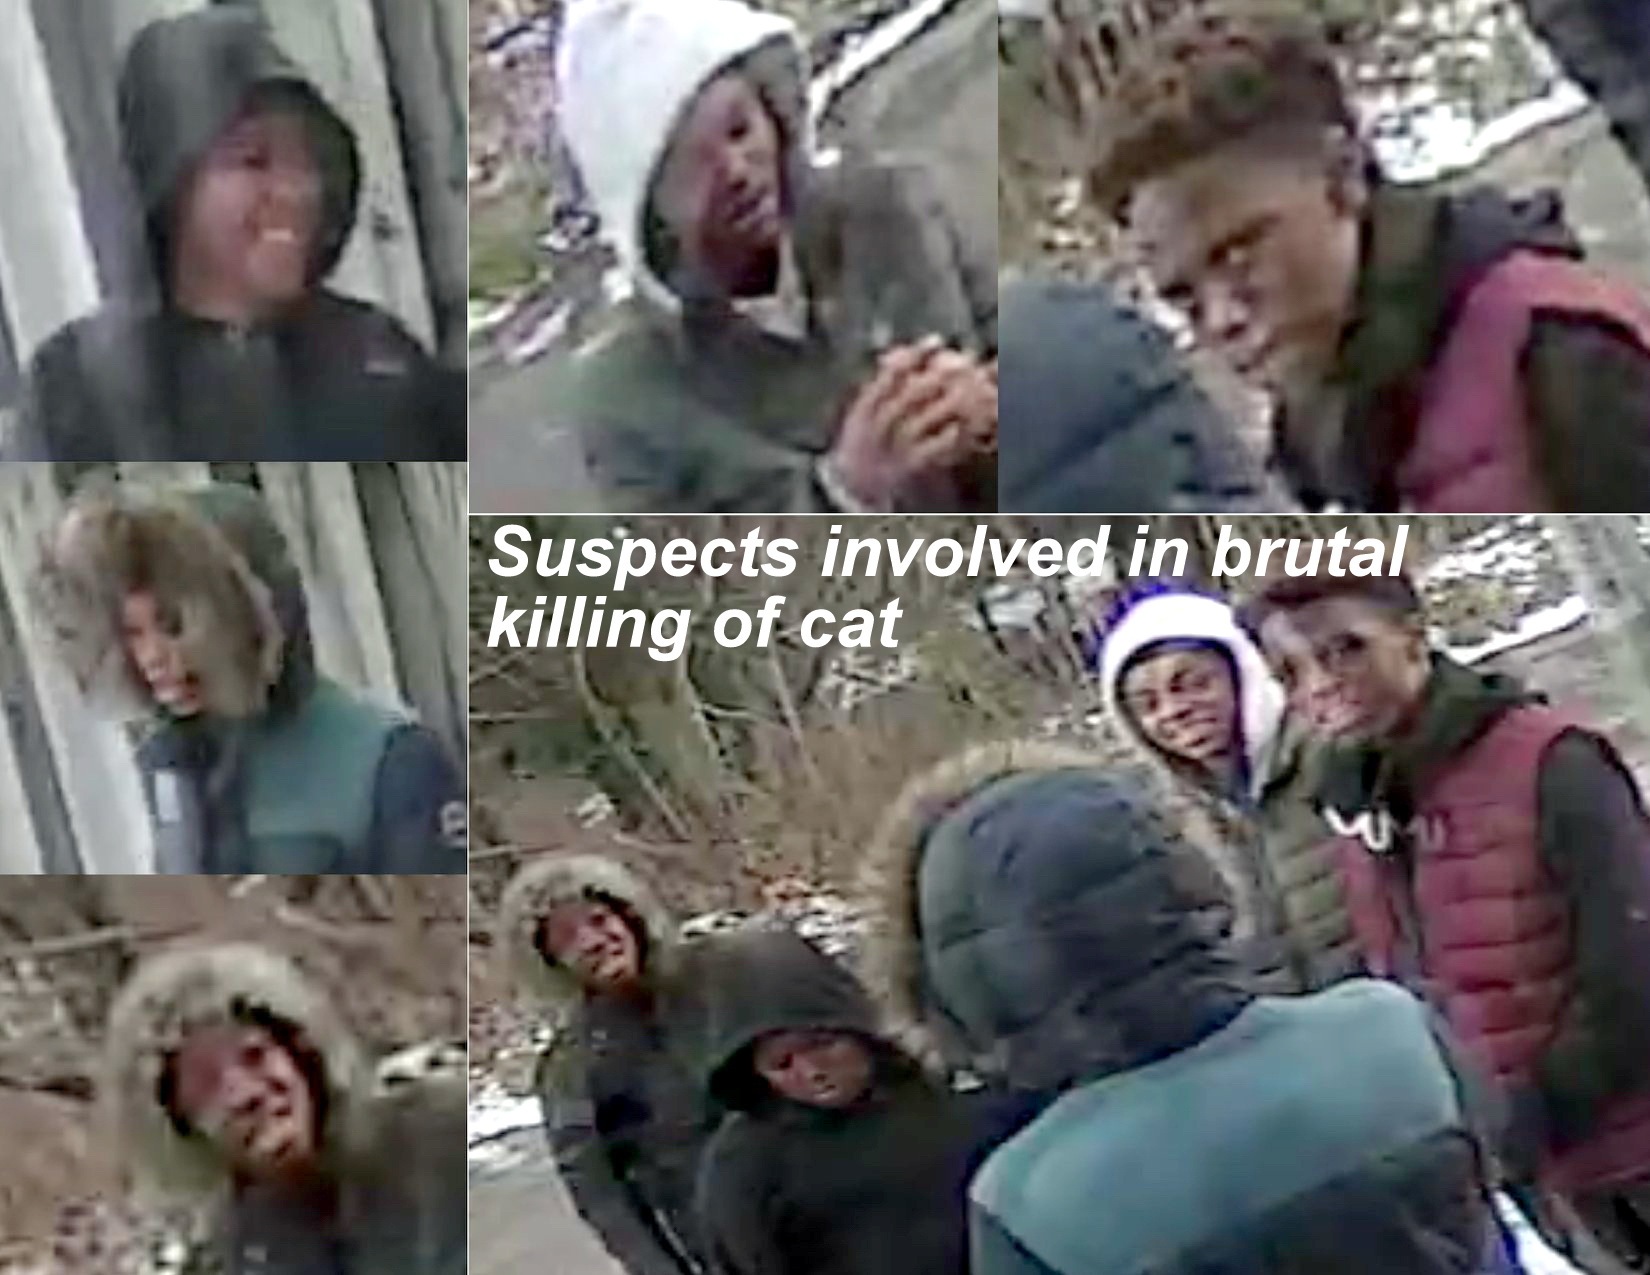 Photos of suspects who are believed to have abused an killed a cat